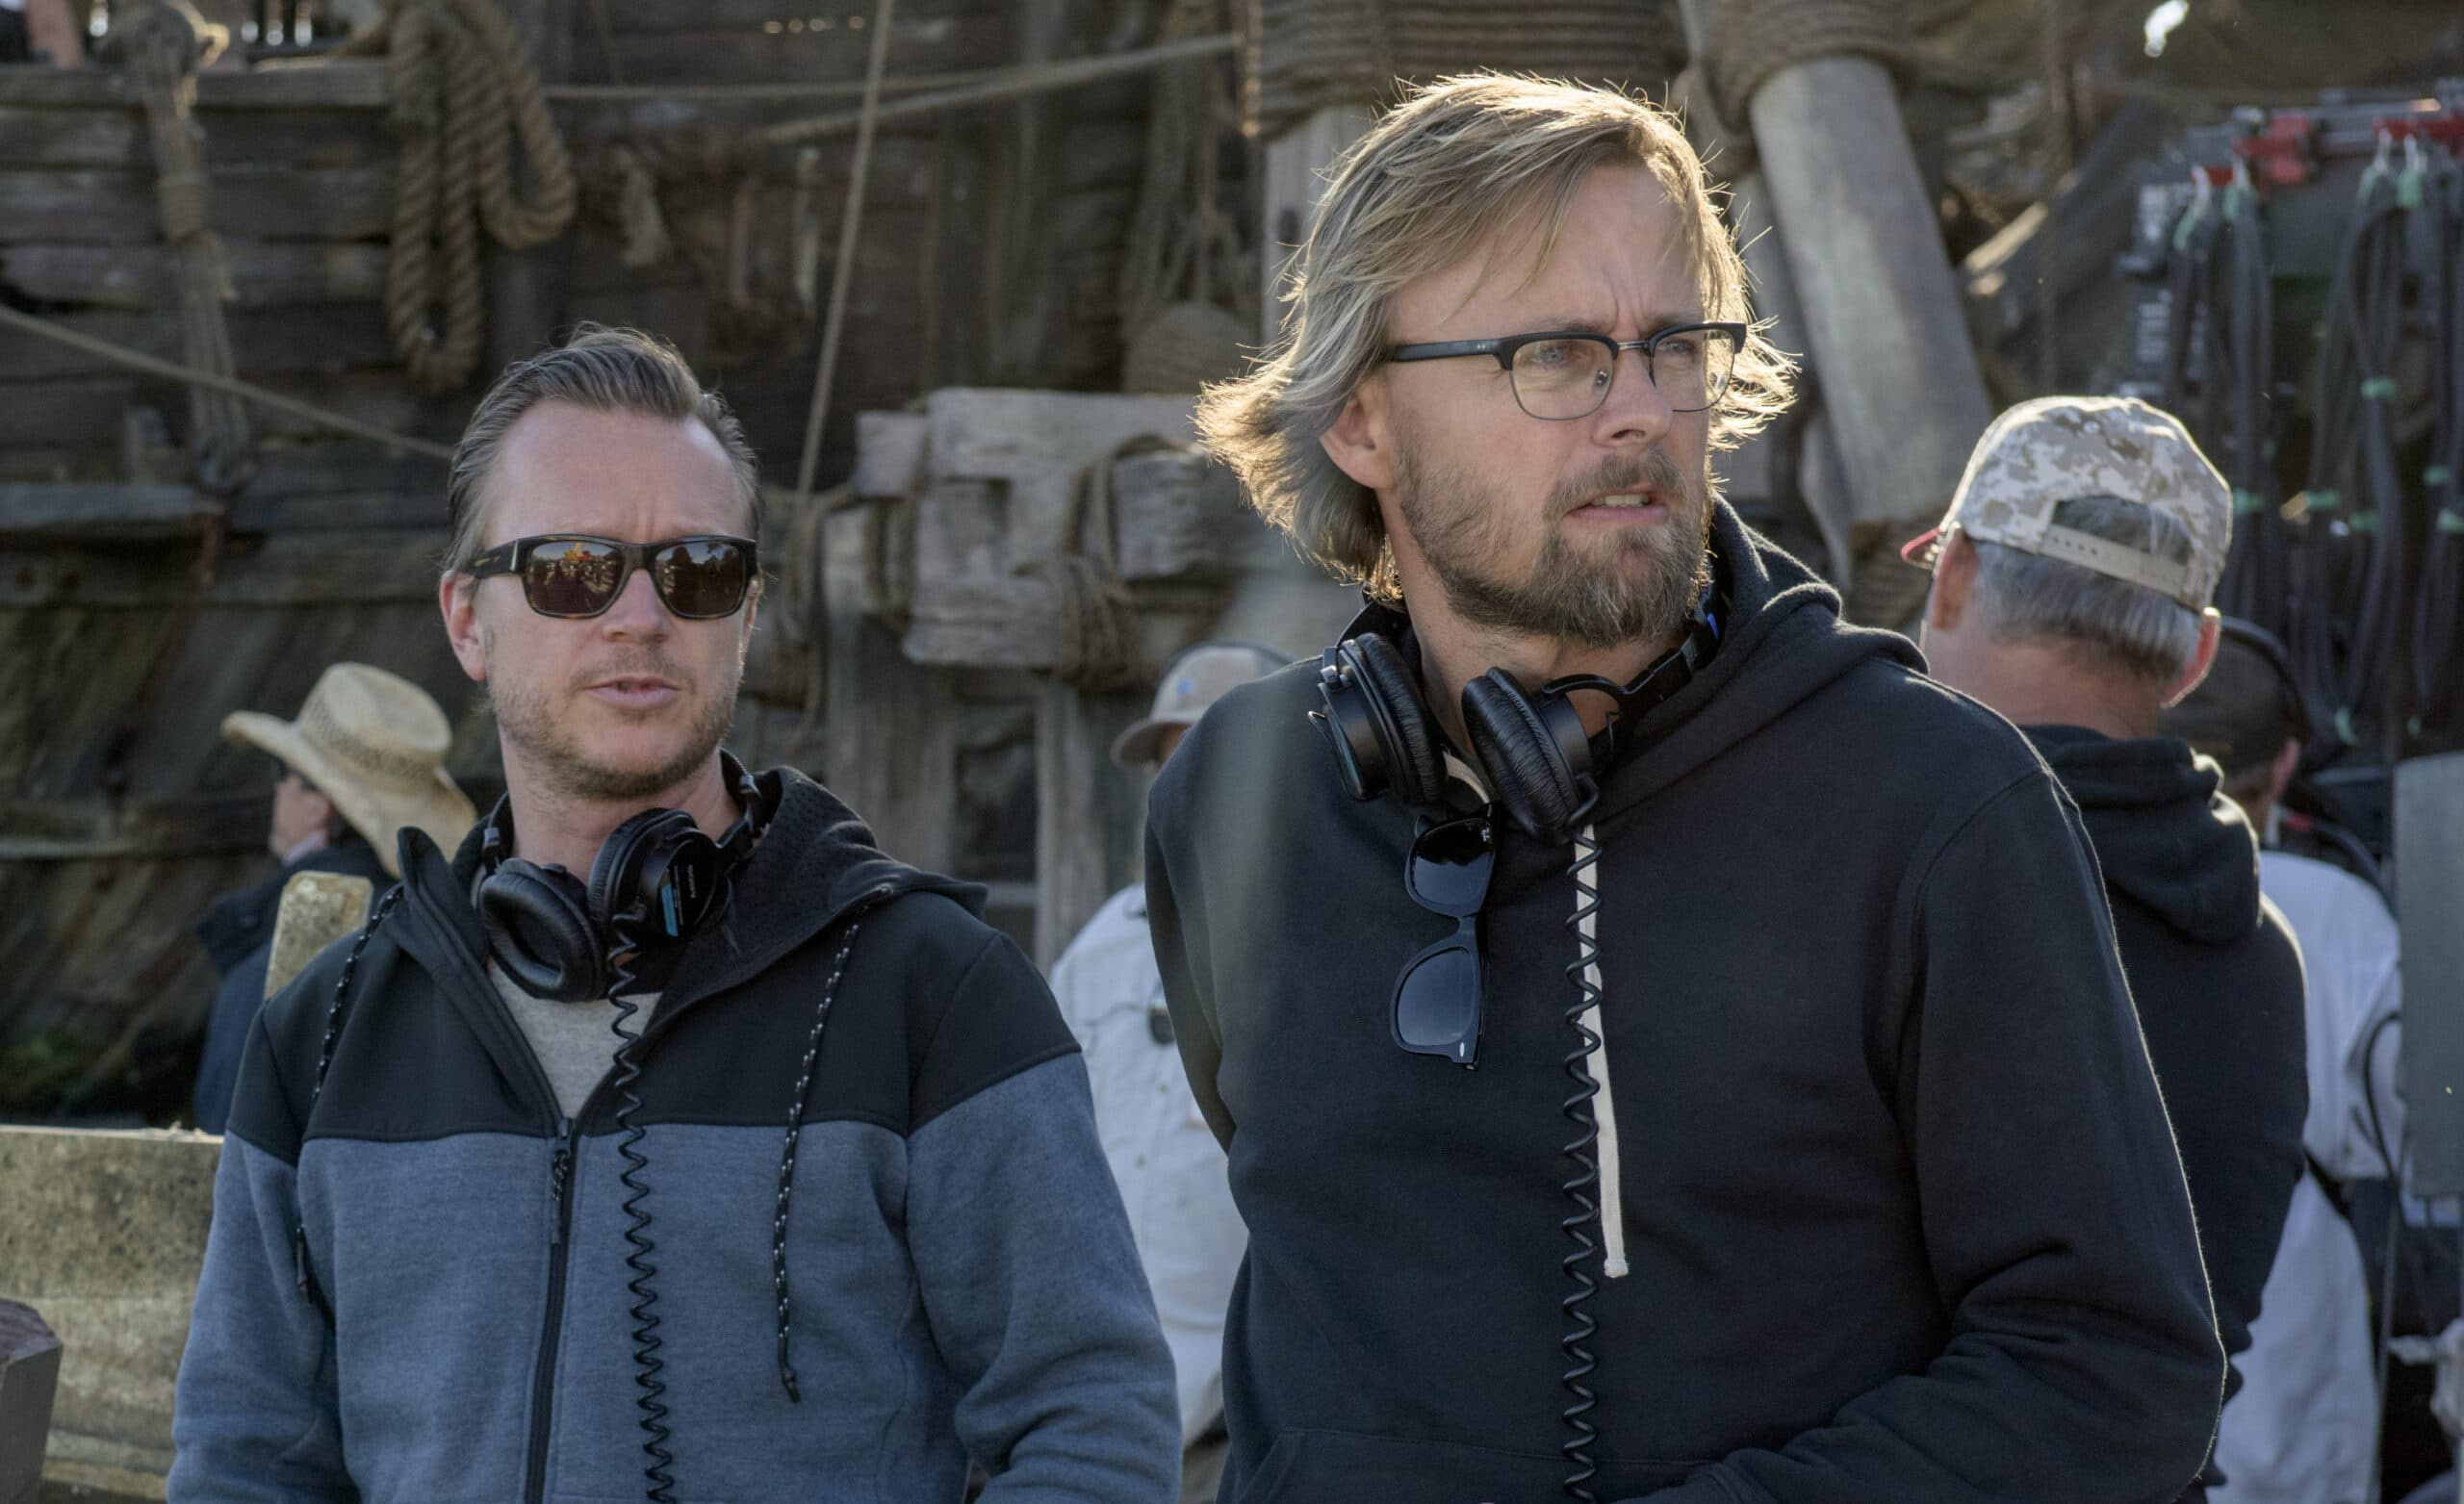 Exclusive Interview with Directors Joachim Ronning & Espen Sandberg – Pirates Of The Caribbean: Dead Men Tell No Tales #PiratesLifeEvent #PiratesOfTheCaribbean